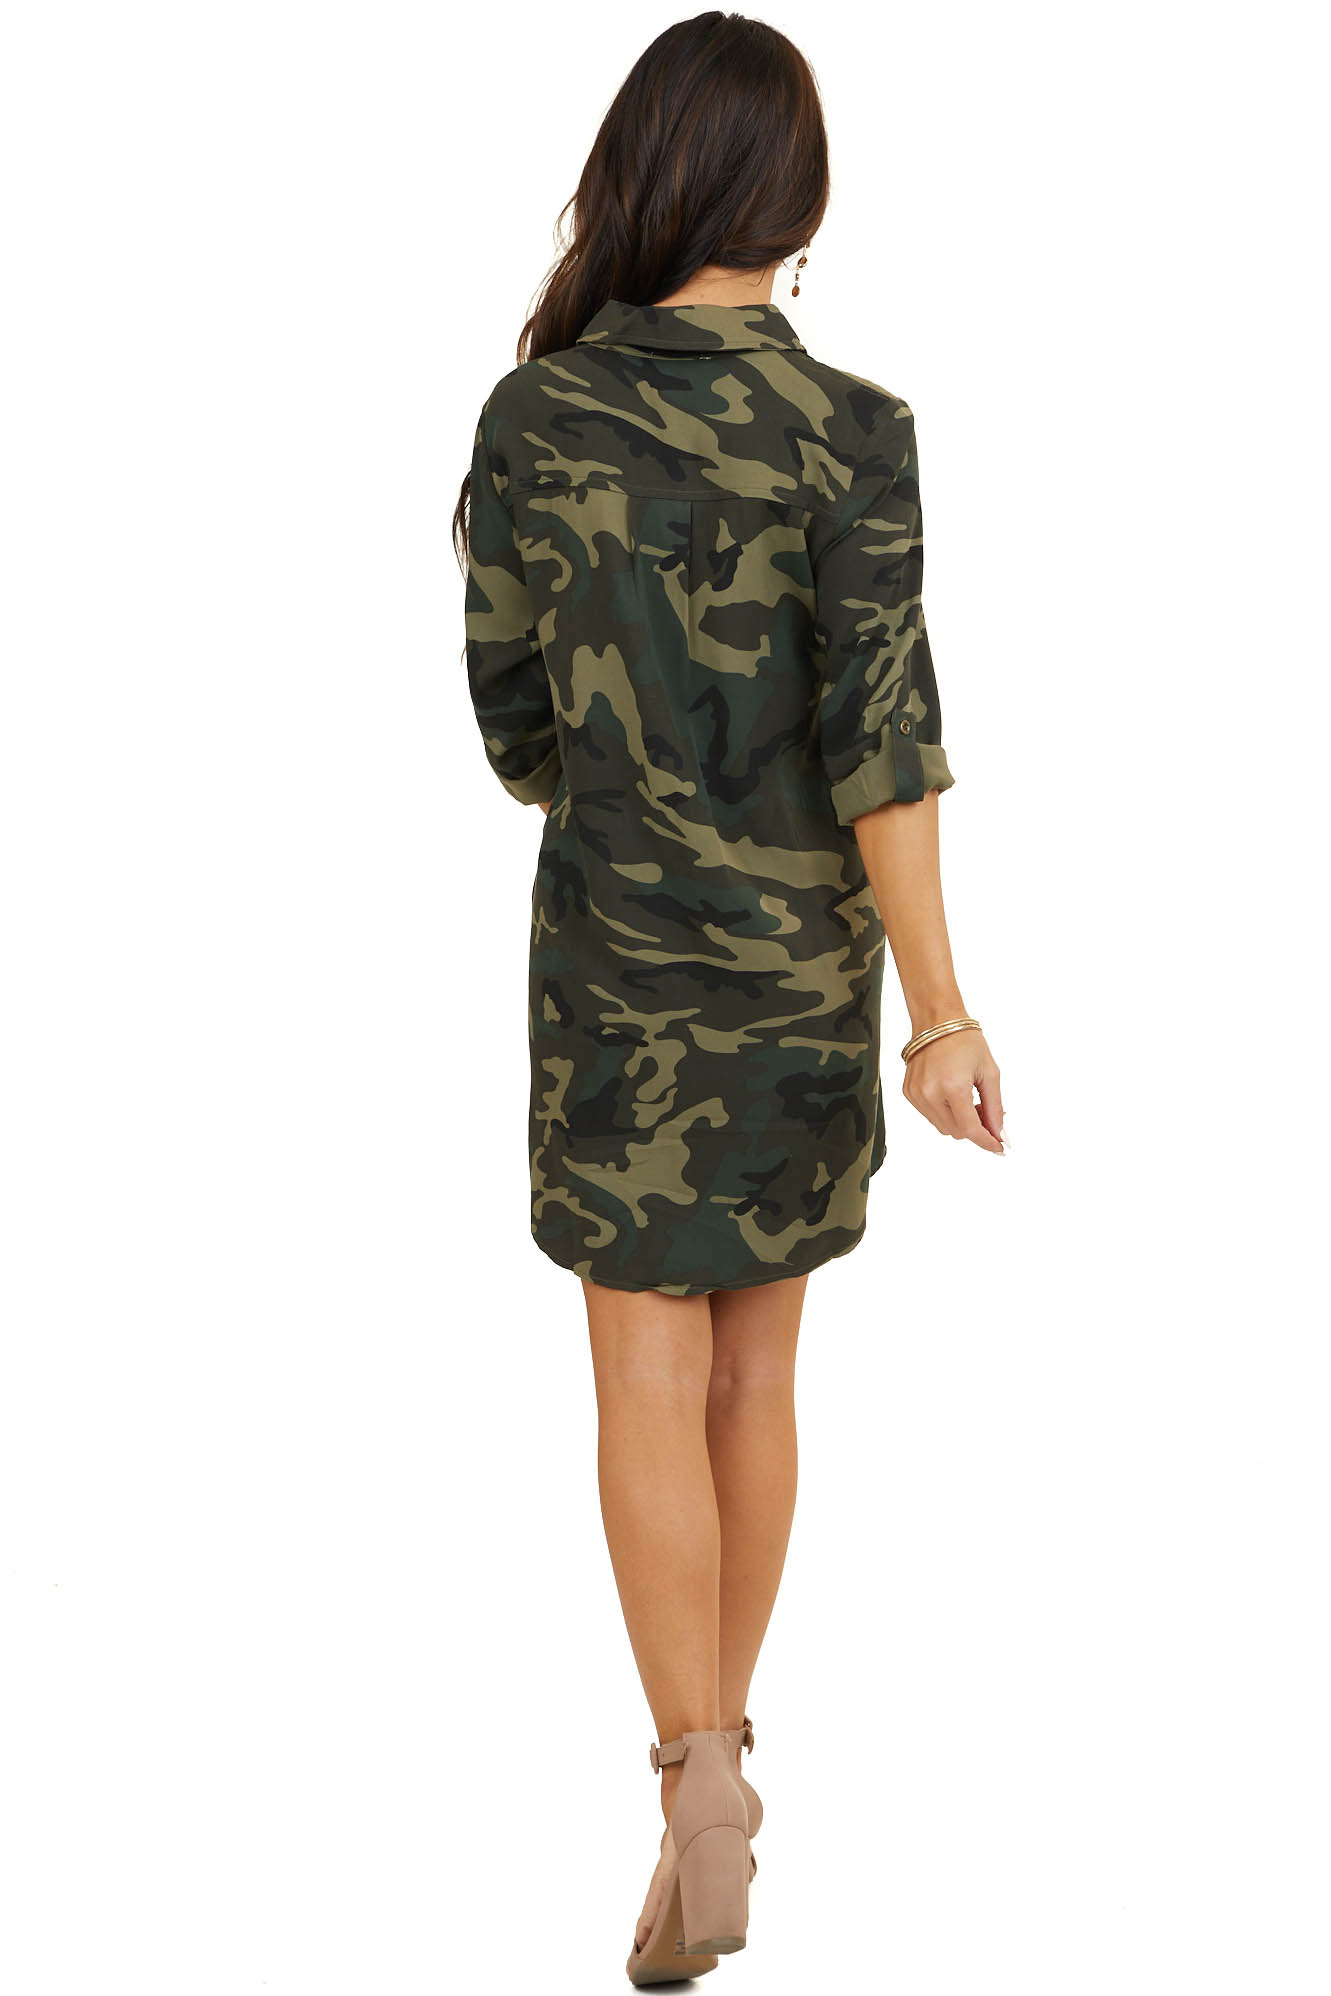 Forest Green Camo Short Woven Dress with Front Buttons